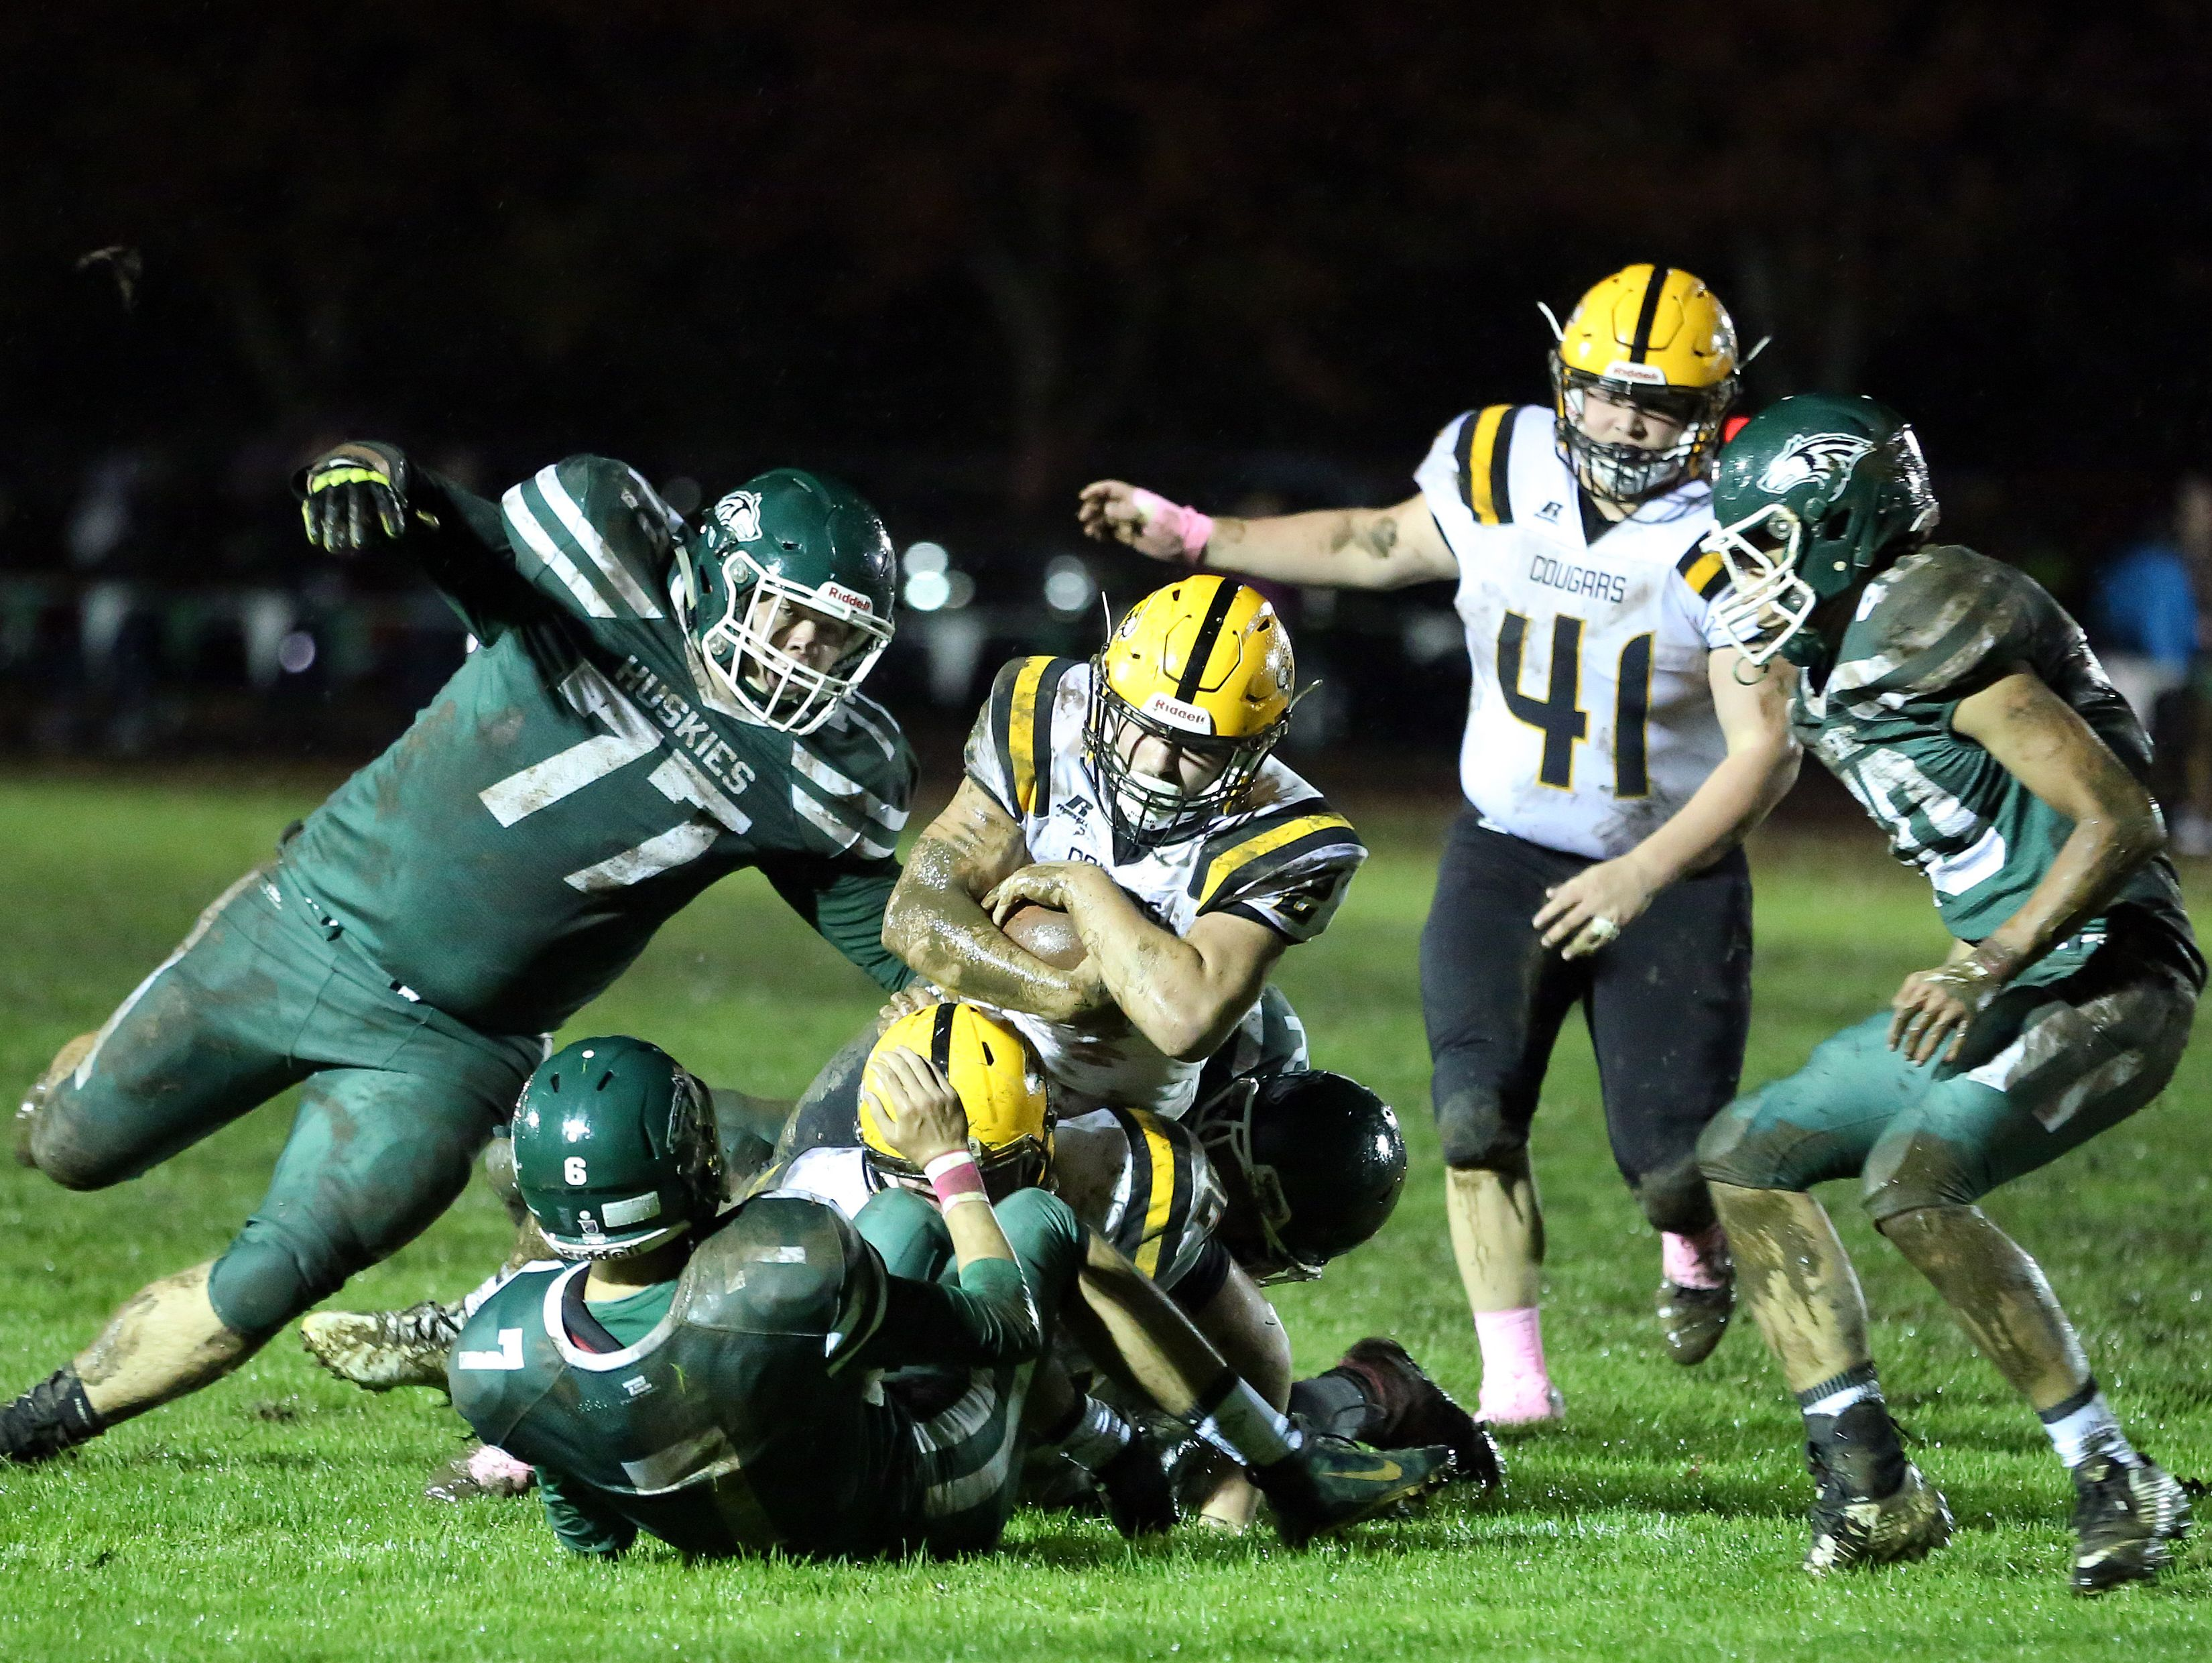 North Marion defenders take down Cascade's Justin Marcott in an Oregon West Conference game on Friday, Oct. 21, 2016.